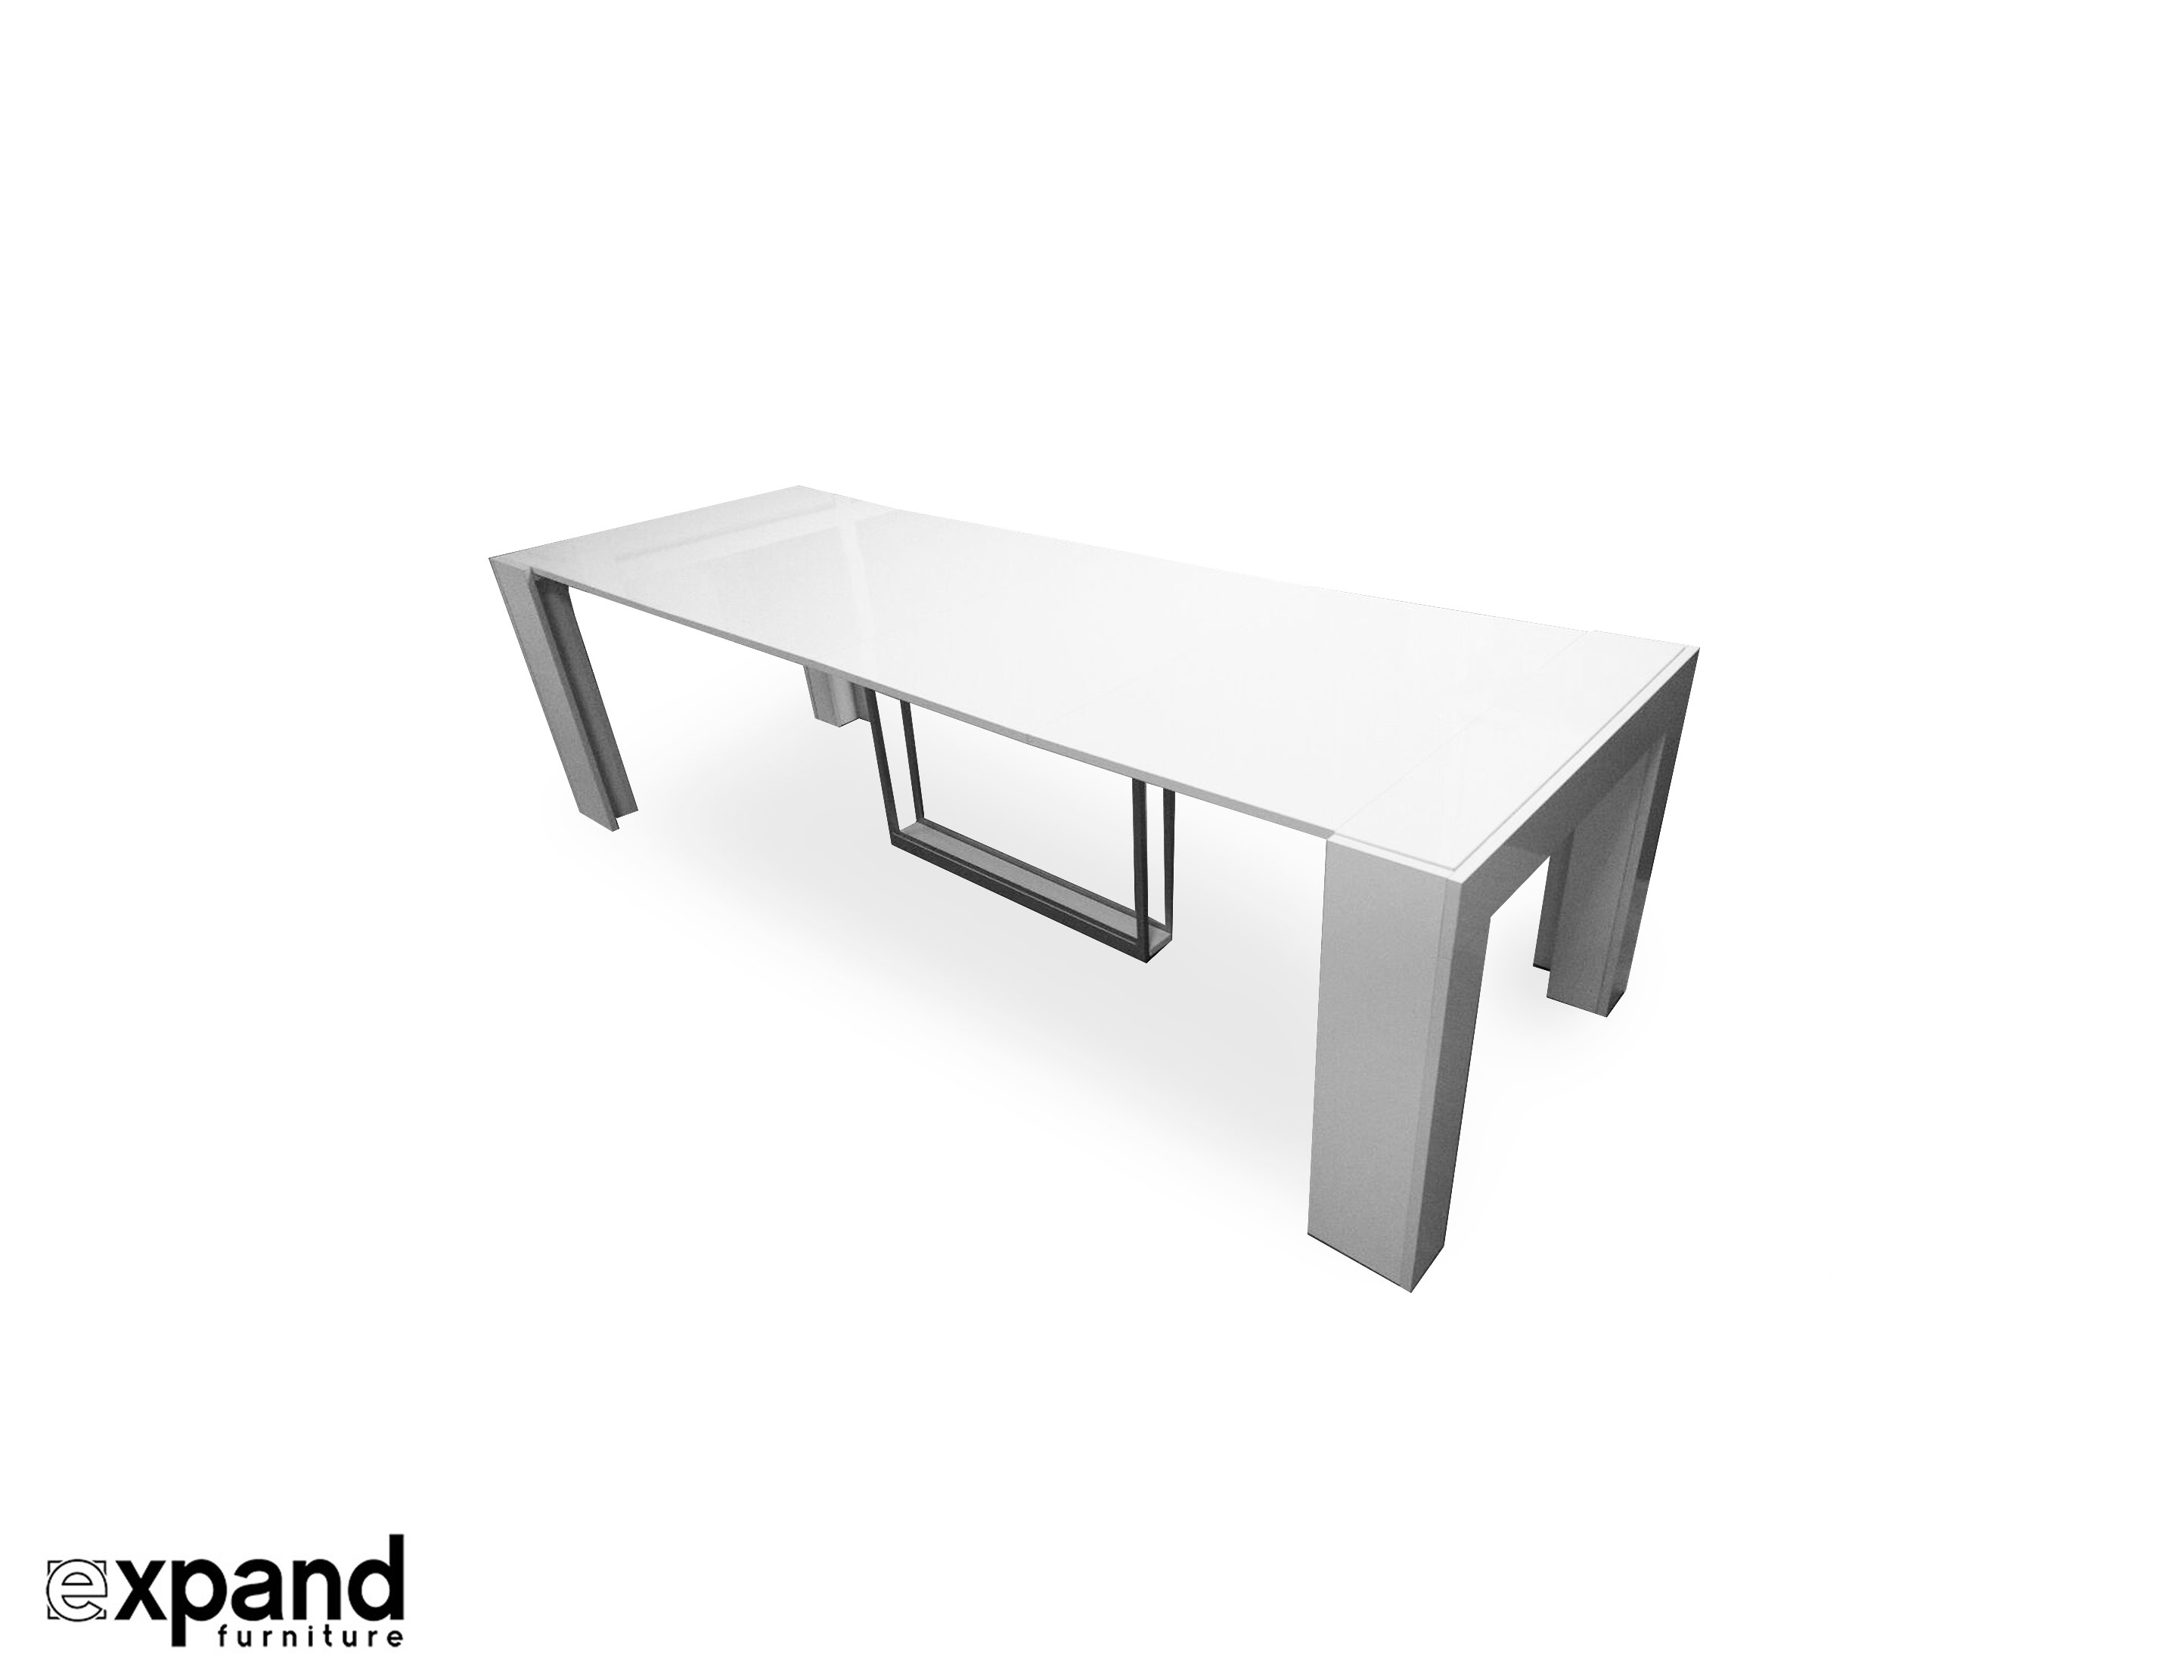 Built In Folding Table Cubist Table With Built In Extension Storage Expand